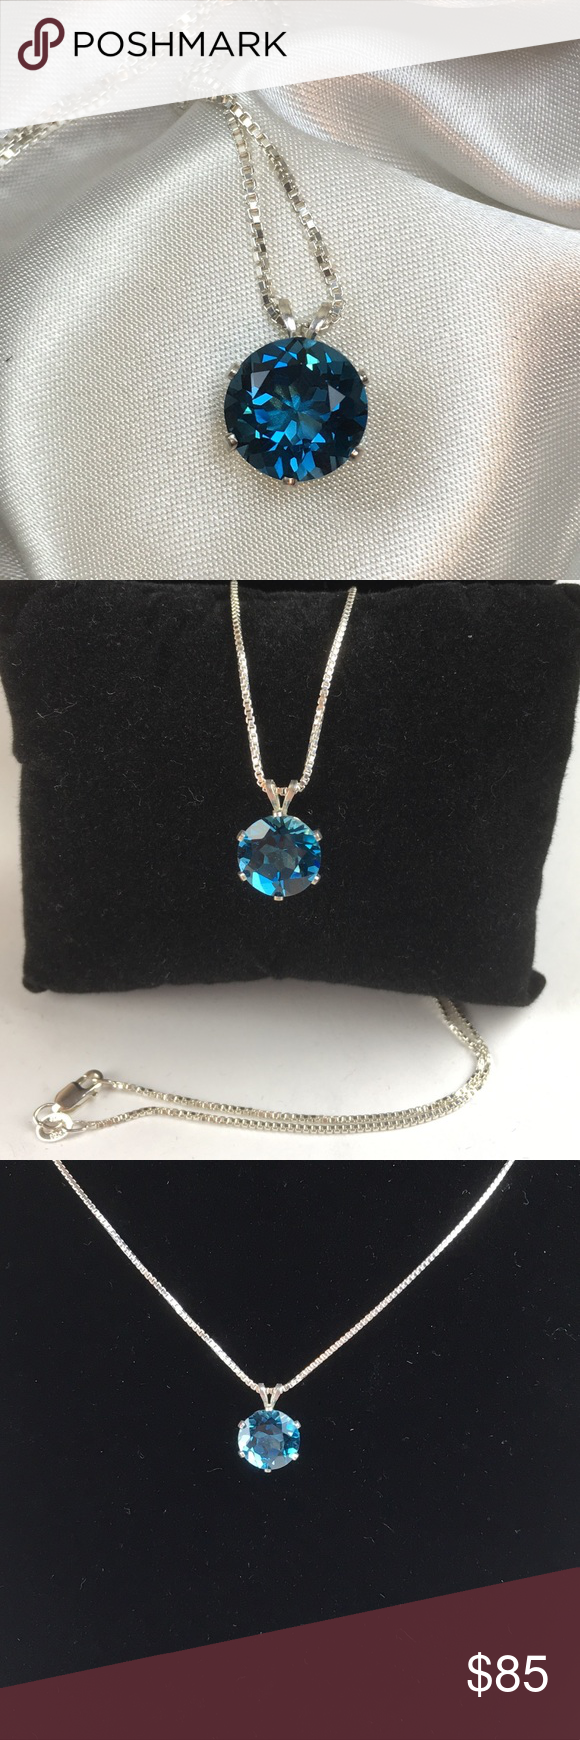 """💙Genuine London Blue Topaz Pendant💙 This London Blue Topaz is 10mm round, and is 8.5 cts set in a 14K White Gold Setting. It comes with an 18"""" .925 Sterling Silver Box Chain. A very beautiful gemstone 💎 Jewelry Necklaces"""